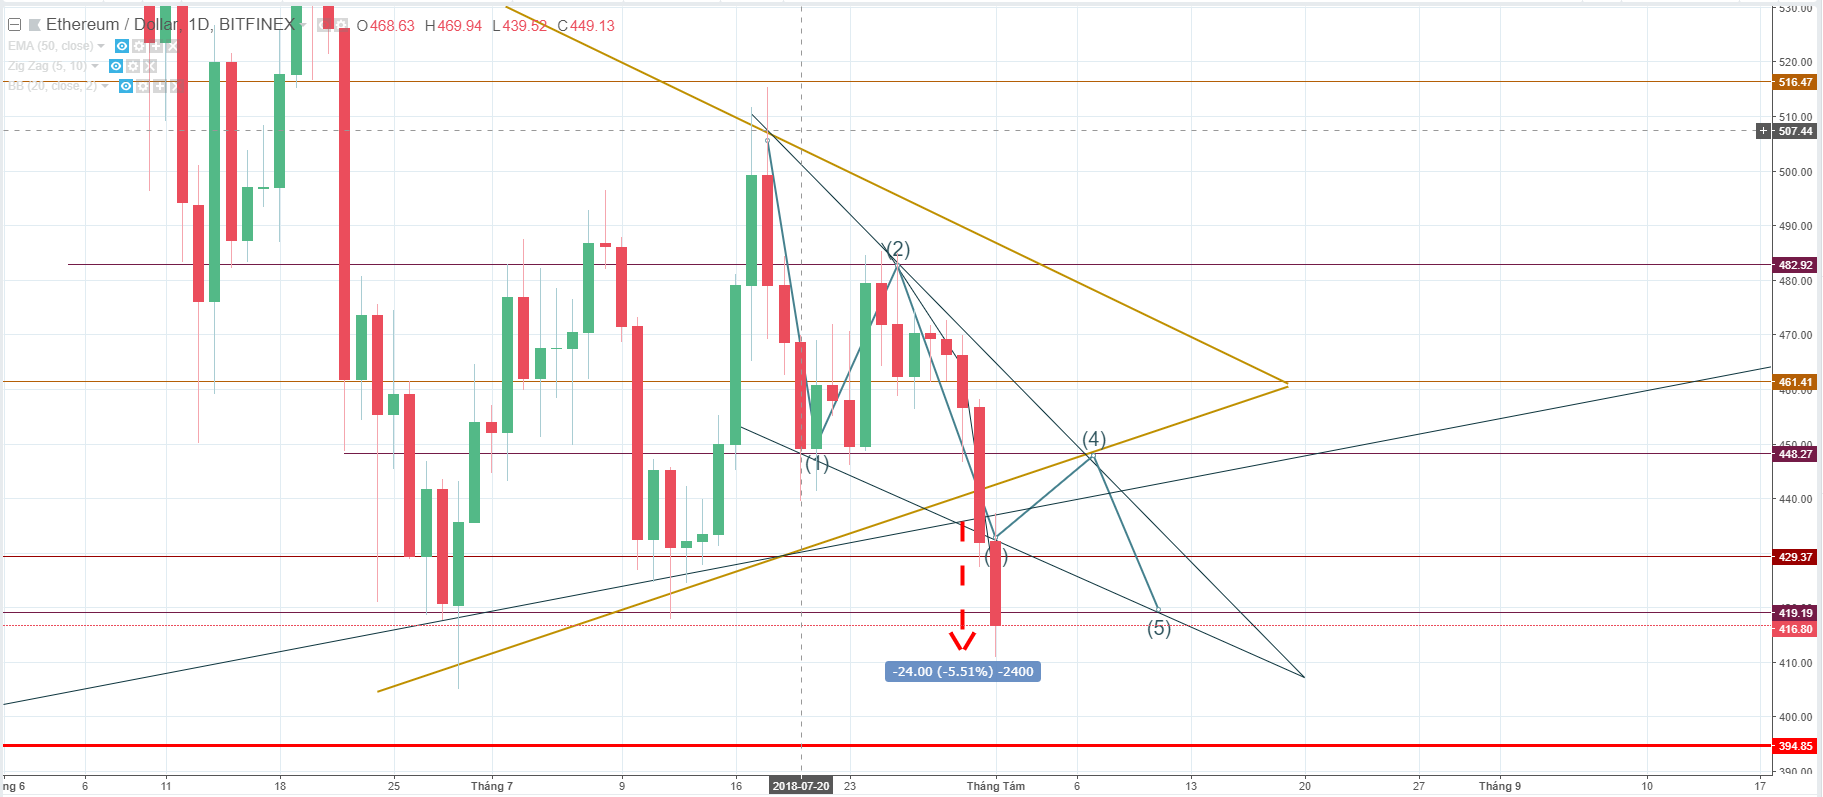 ETH price, Ethereum price, Ethereum price forecast, Ethereum price analysis, USD, ETH price forecast, ETH price analysis, cryptocurrency, major cryptocurrencies, major 10 cryptocurrencies